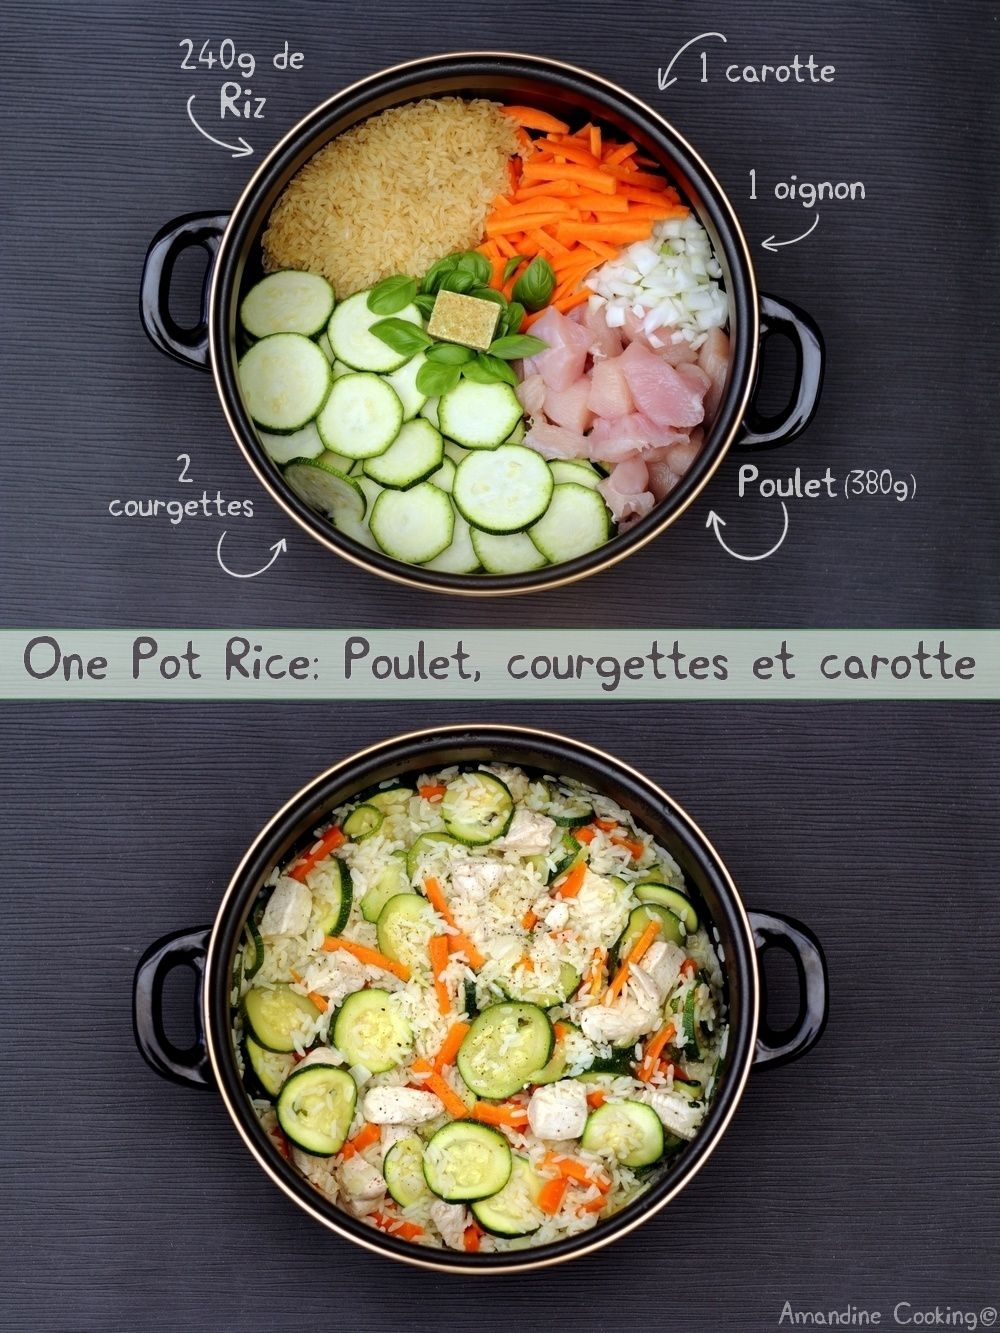 One pot rice: poulet, courgettes et carotte